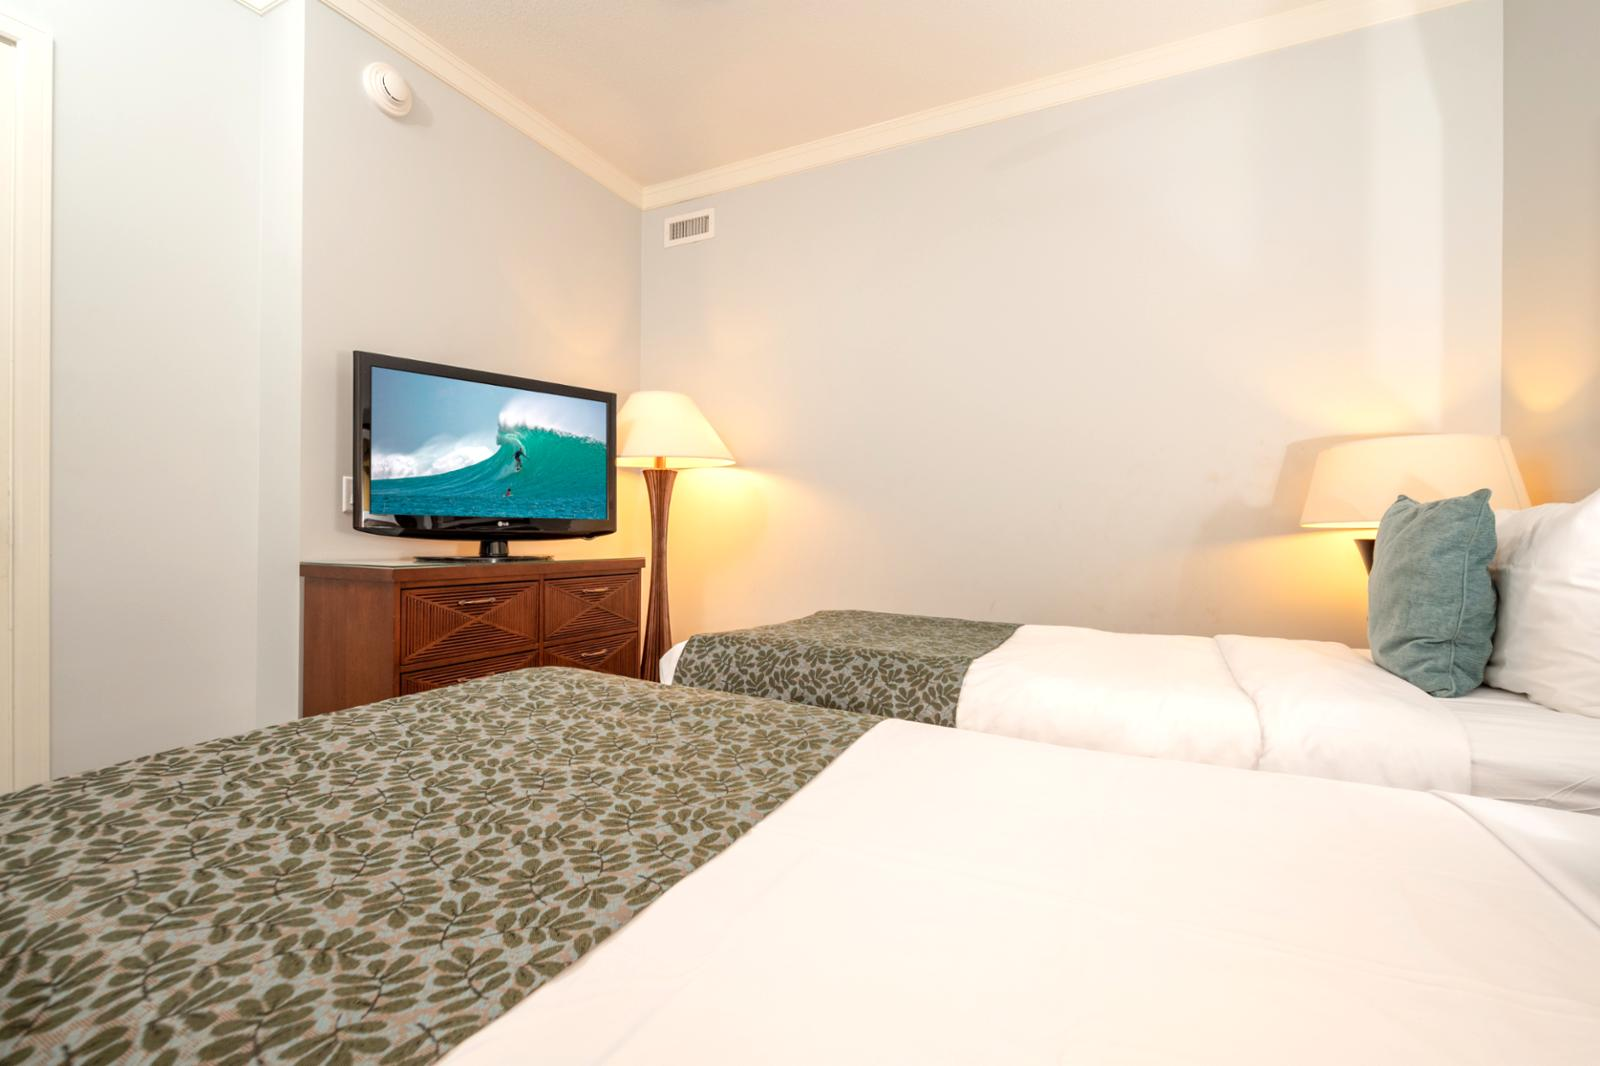 Large flatscreen television and ample storage for guests